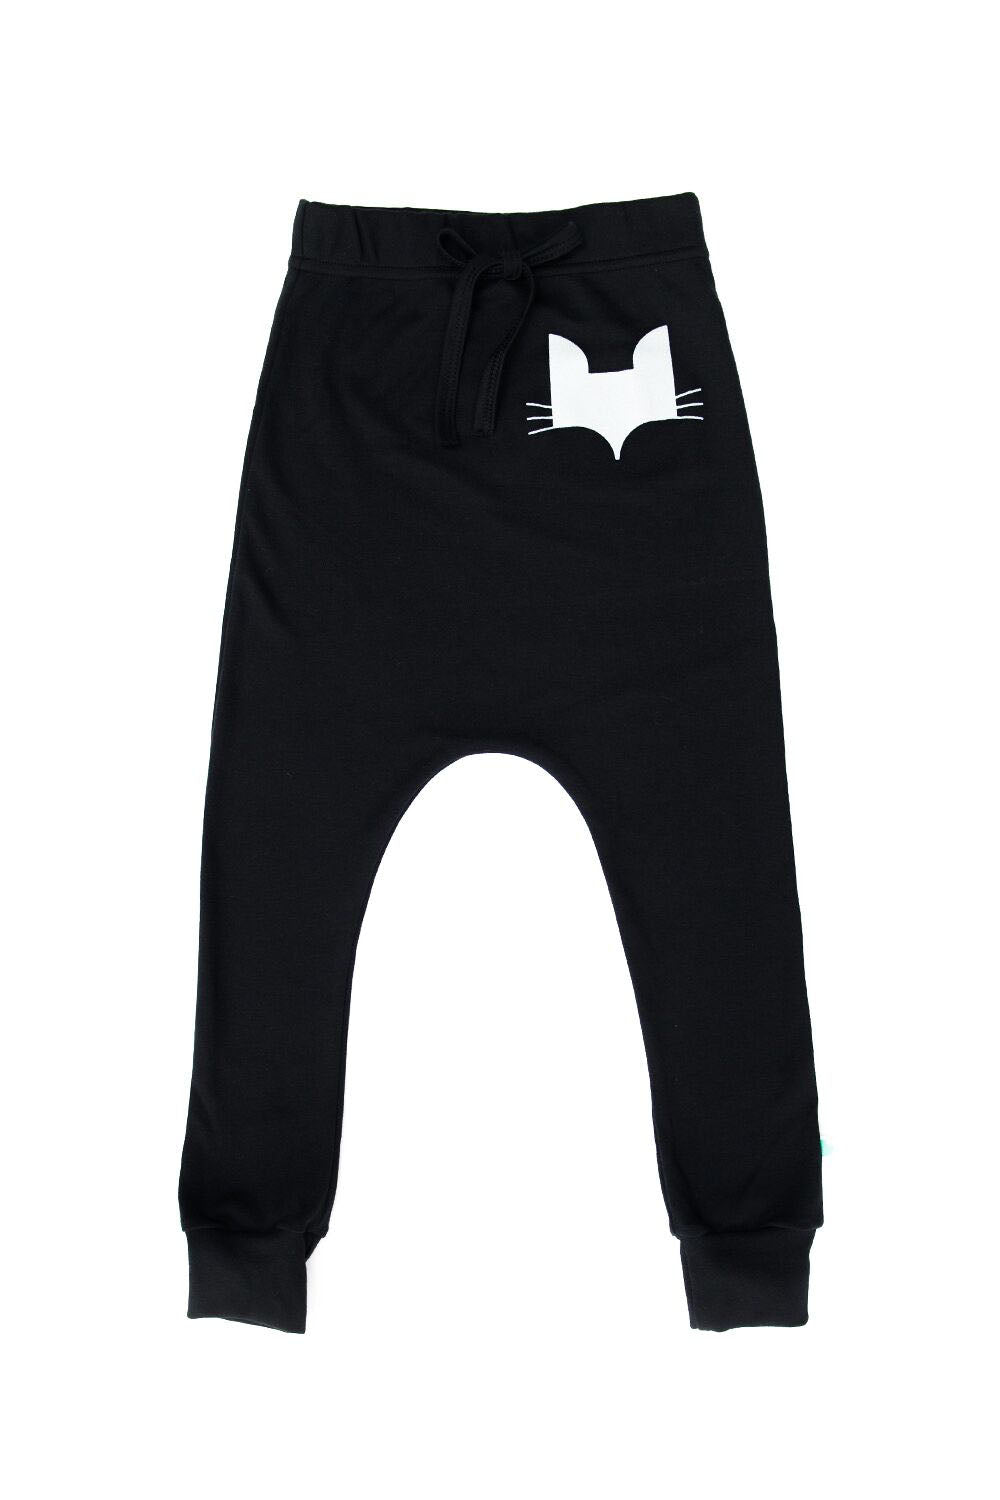 Unisex organic cotton jogger, GOTS certified and vegan friendly.